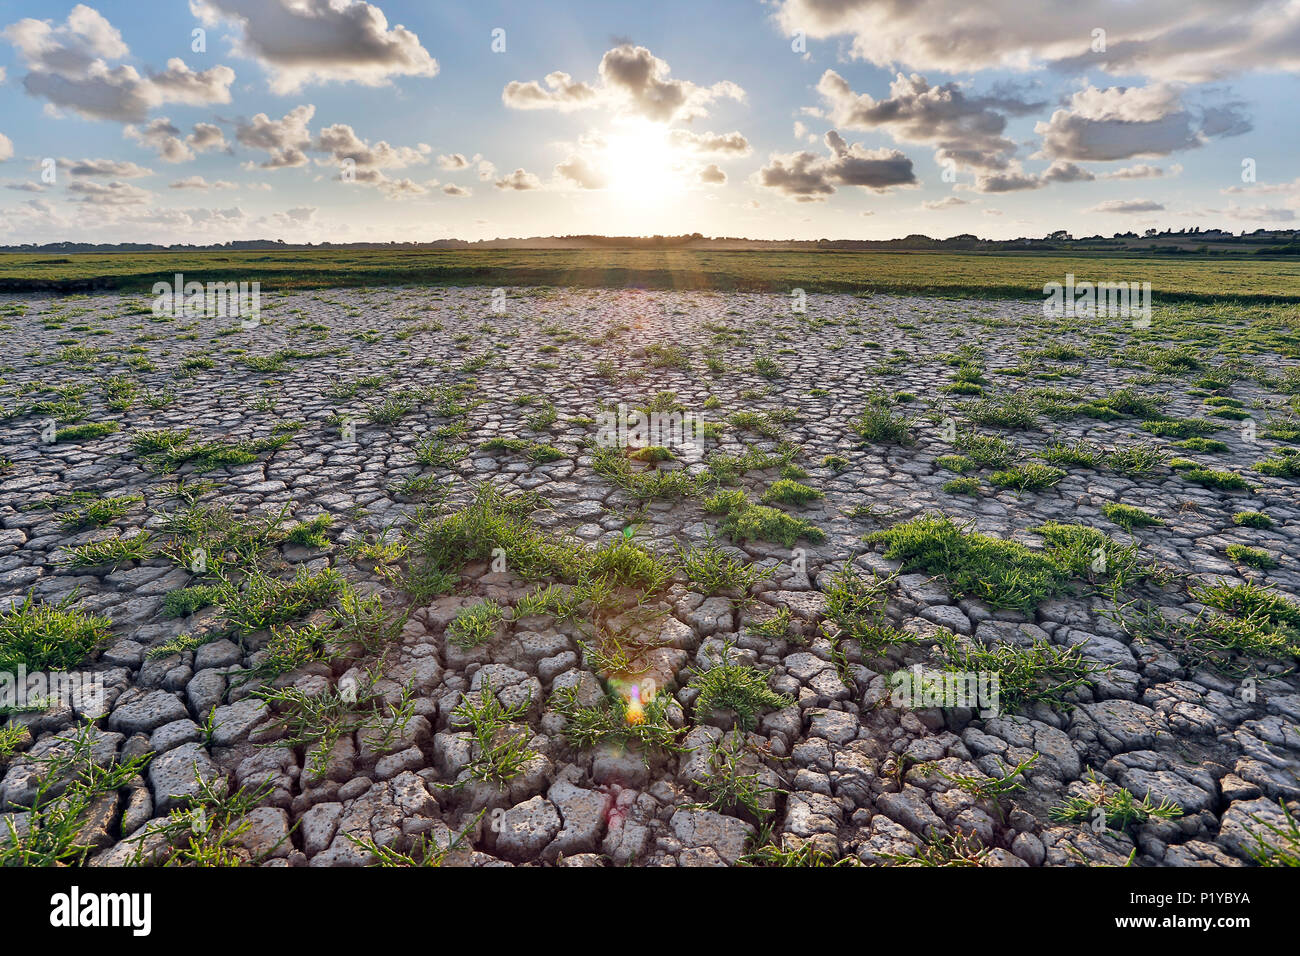 Normandy. Channel. Regneville on Wed Sunset on the marshes drained by the heat wave. Salicornes. - Stock Image